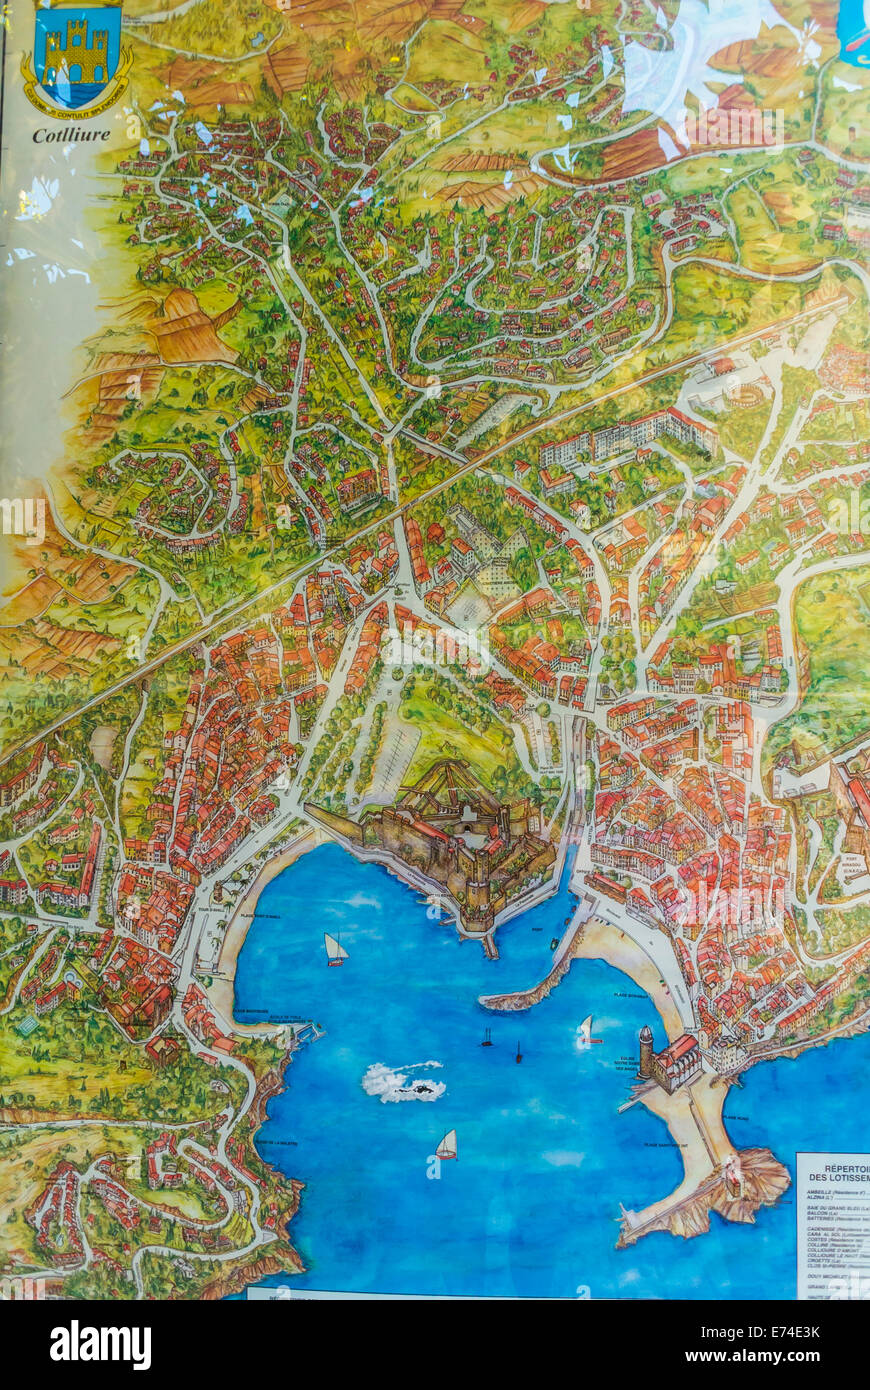 Collioure, France, Old French Map of Seaside Village near Perpignan ...